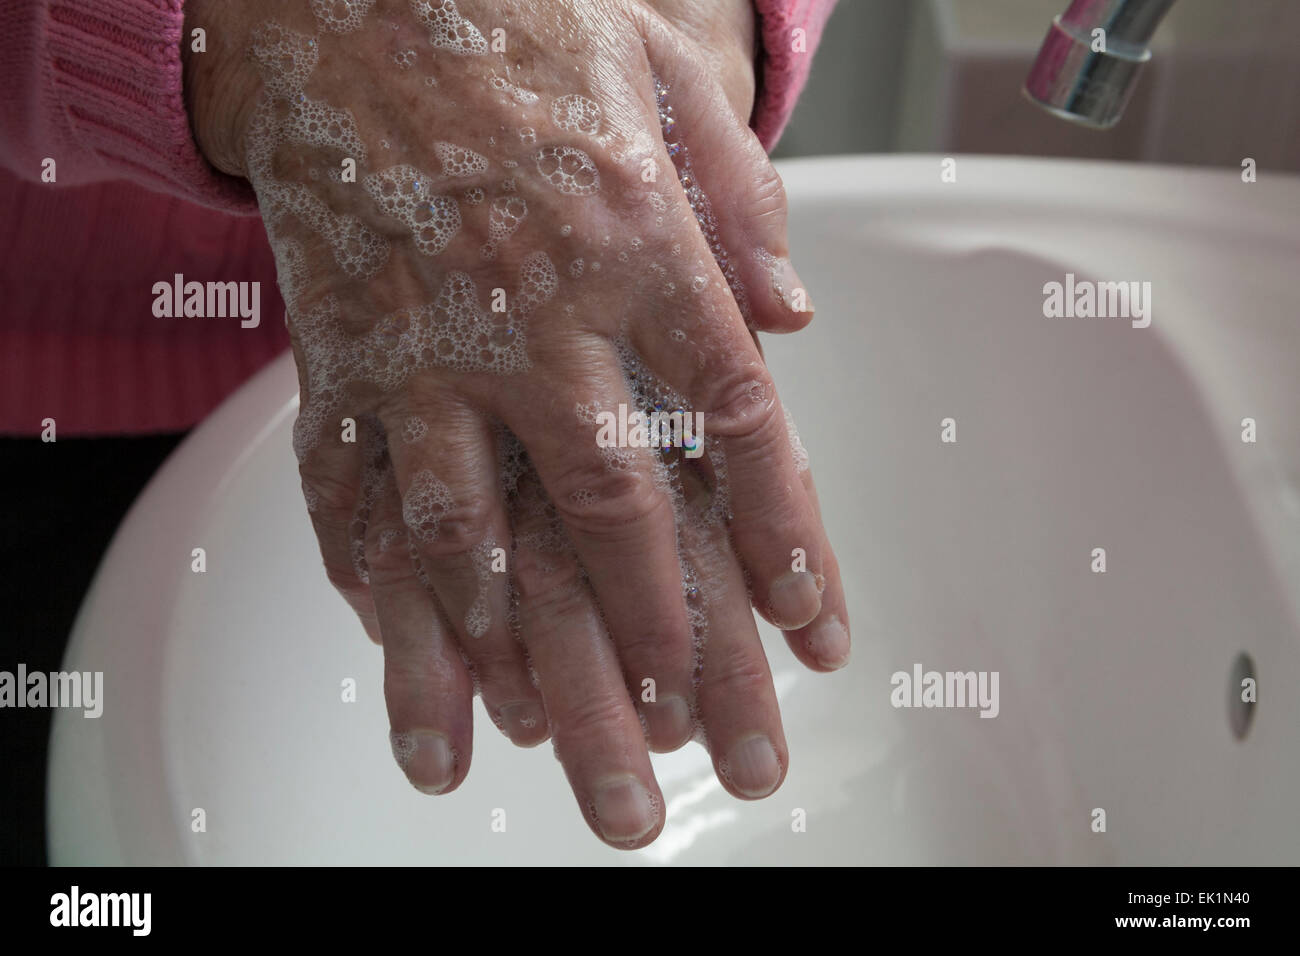 Close up Elderly woman washing hands in bathroom washbasin personal hygiene killing germs - Stock Image